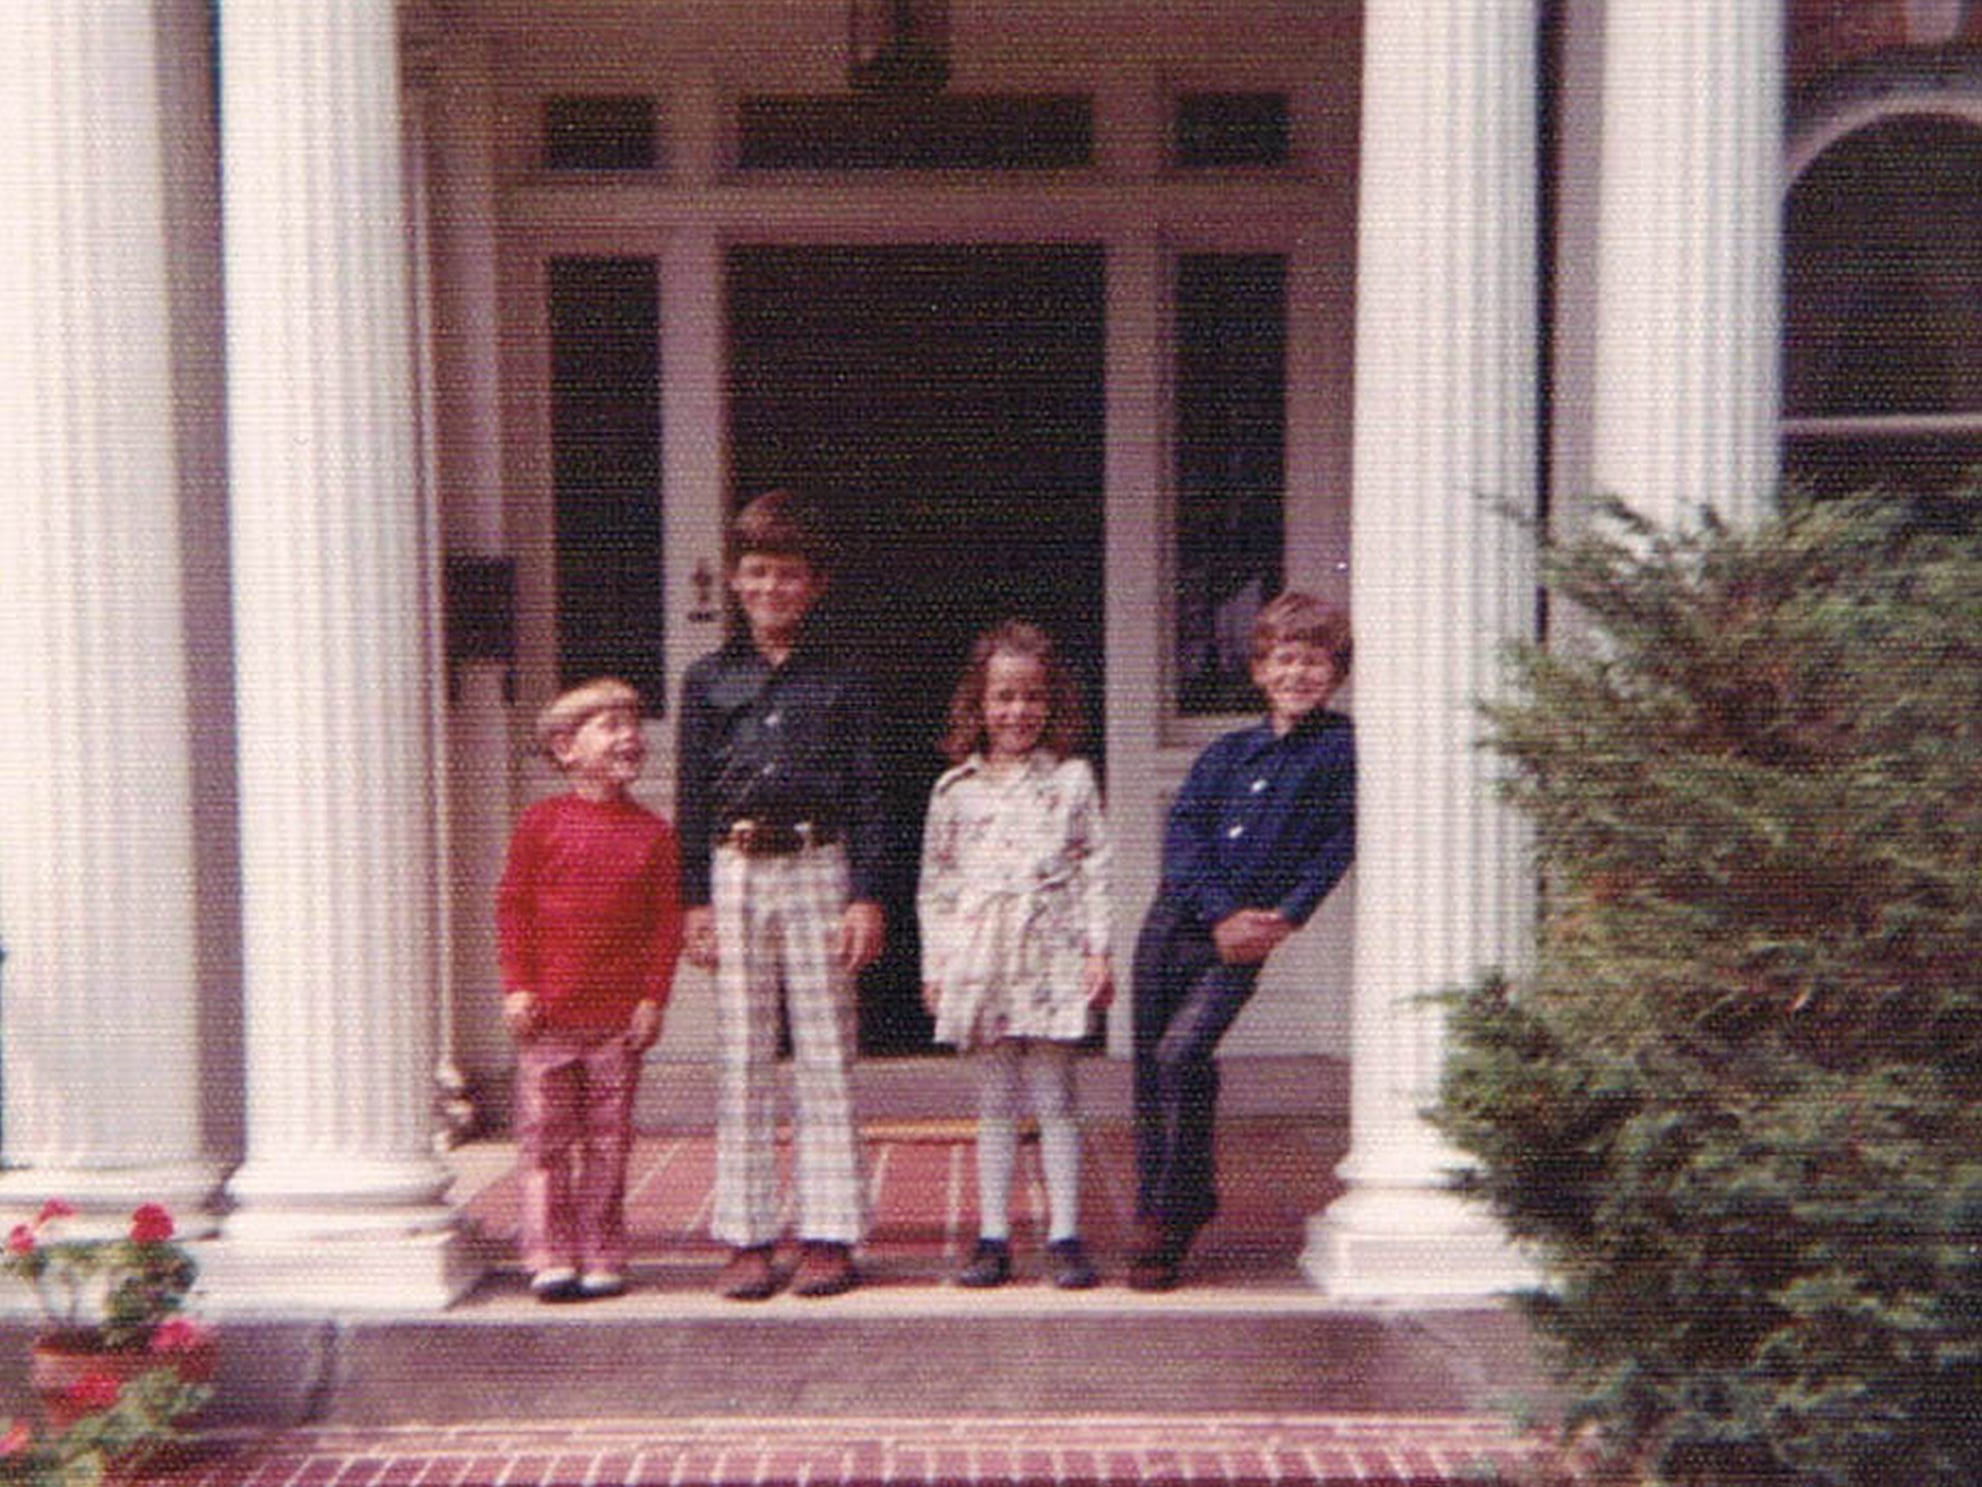 The O'Neill family moved into their new home on HiMount Boulevard in 1971. This photo, taken around that time, shows the four children Andy (from left), Mike, Jen and Matt.